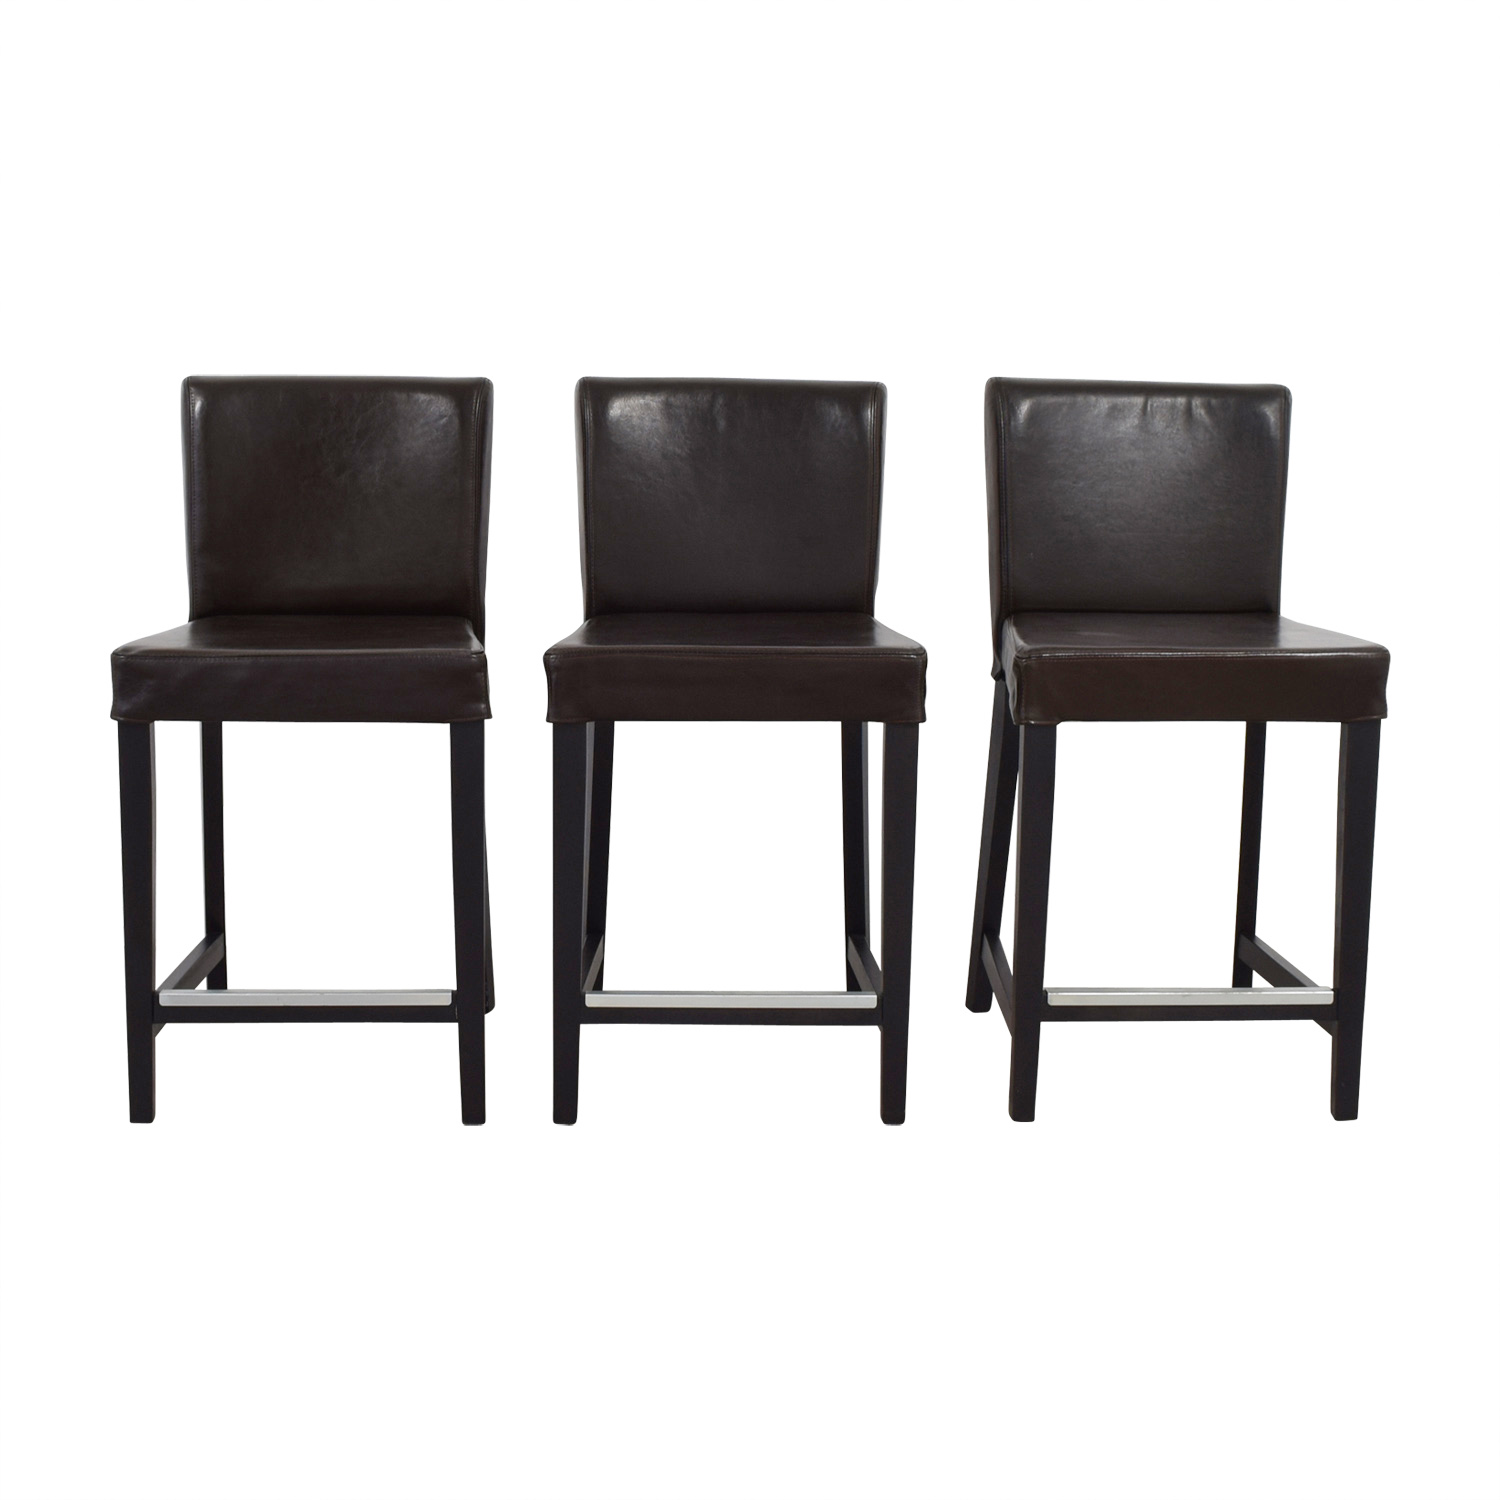 Swell 46 Off Ikea Ikea Henriksdal Brown Leather Bar Stools Chairs Machost Co Dining Chair Design Ideas Machostcouk